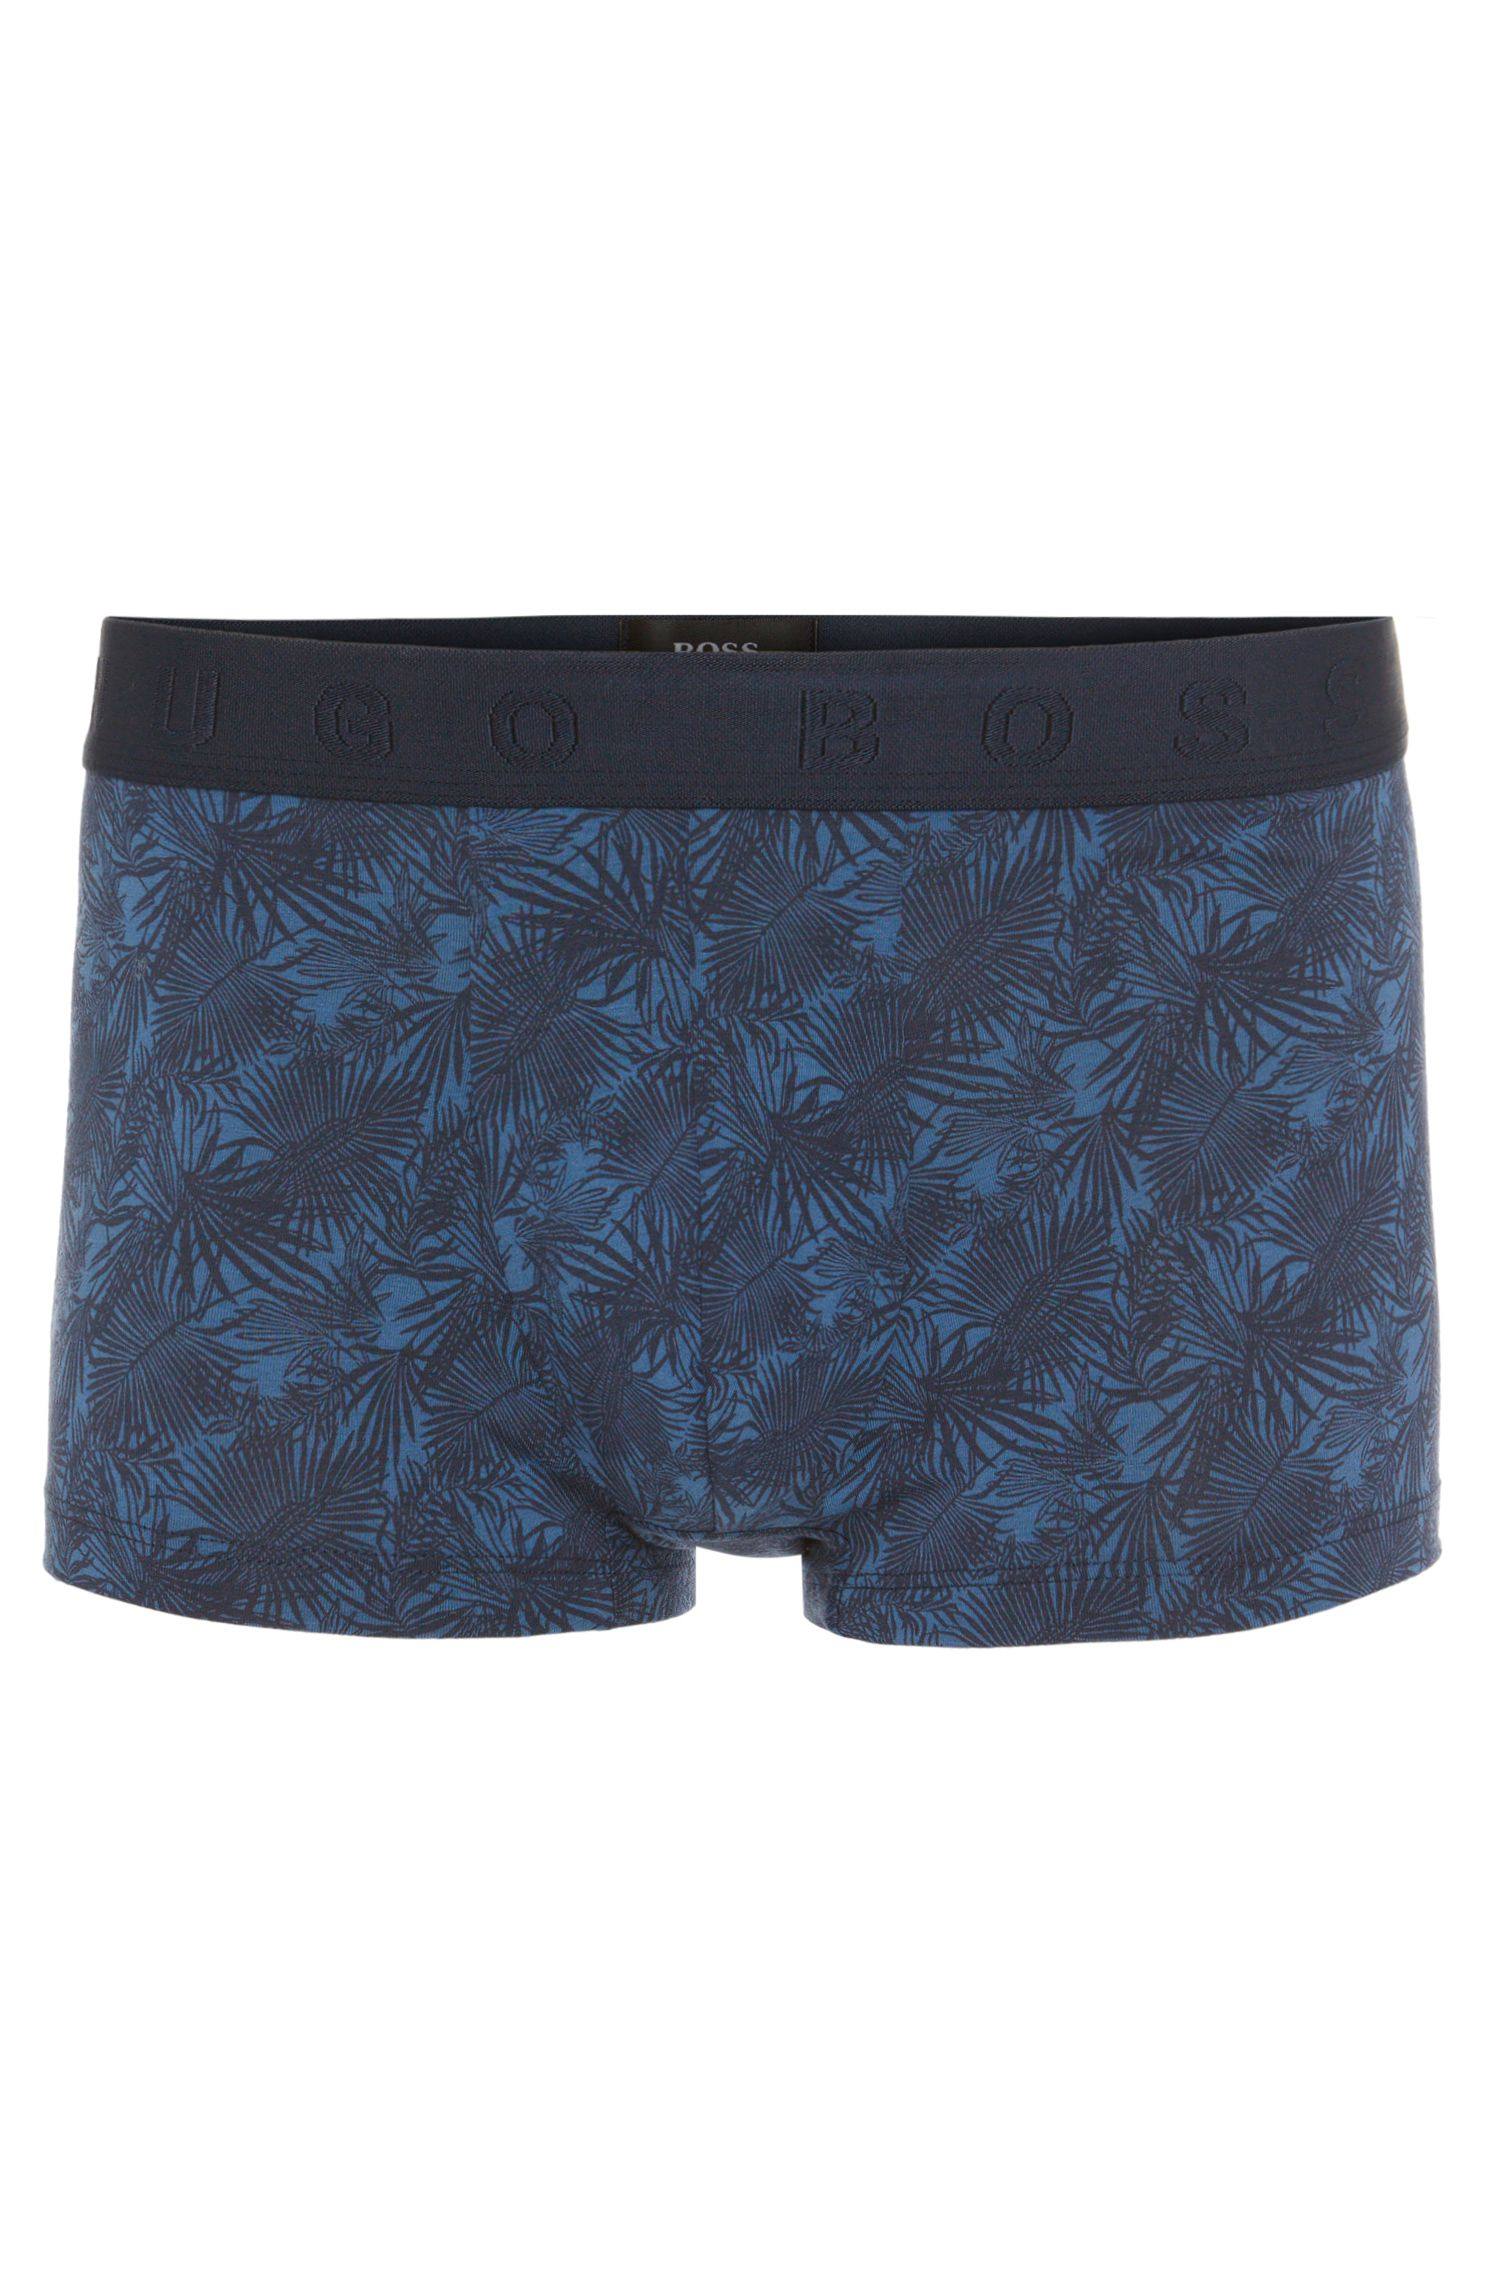 'Boxer Microprint' | Stretch Cotton Modal Printed Trunks